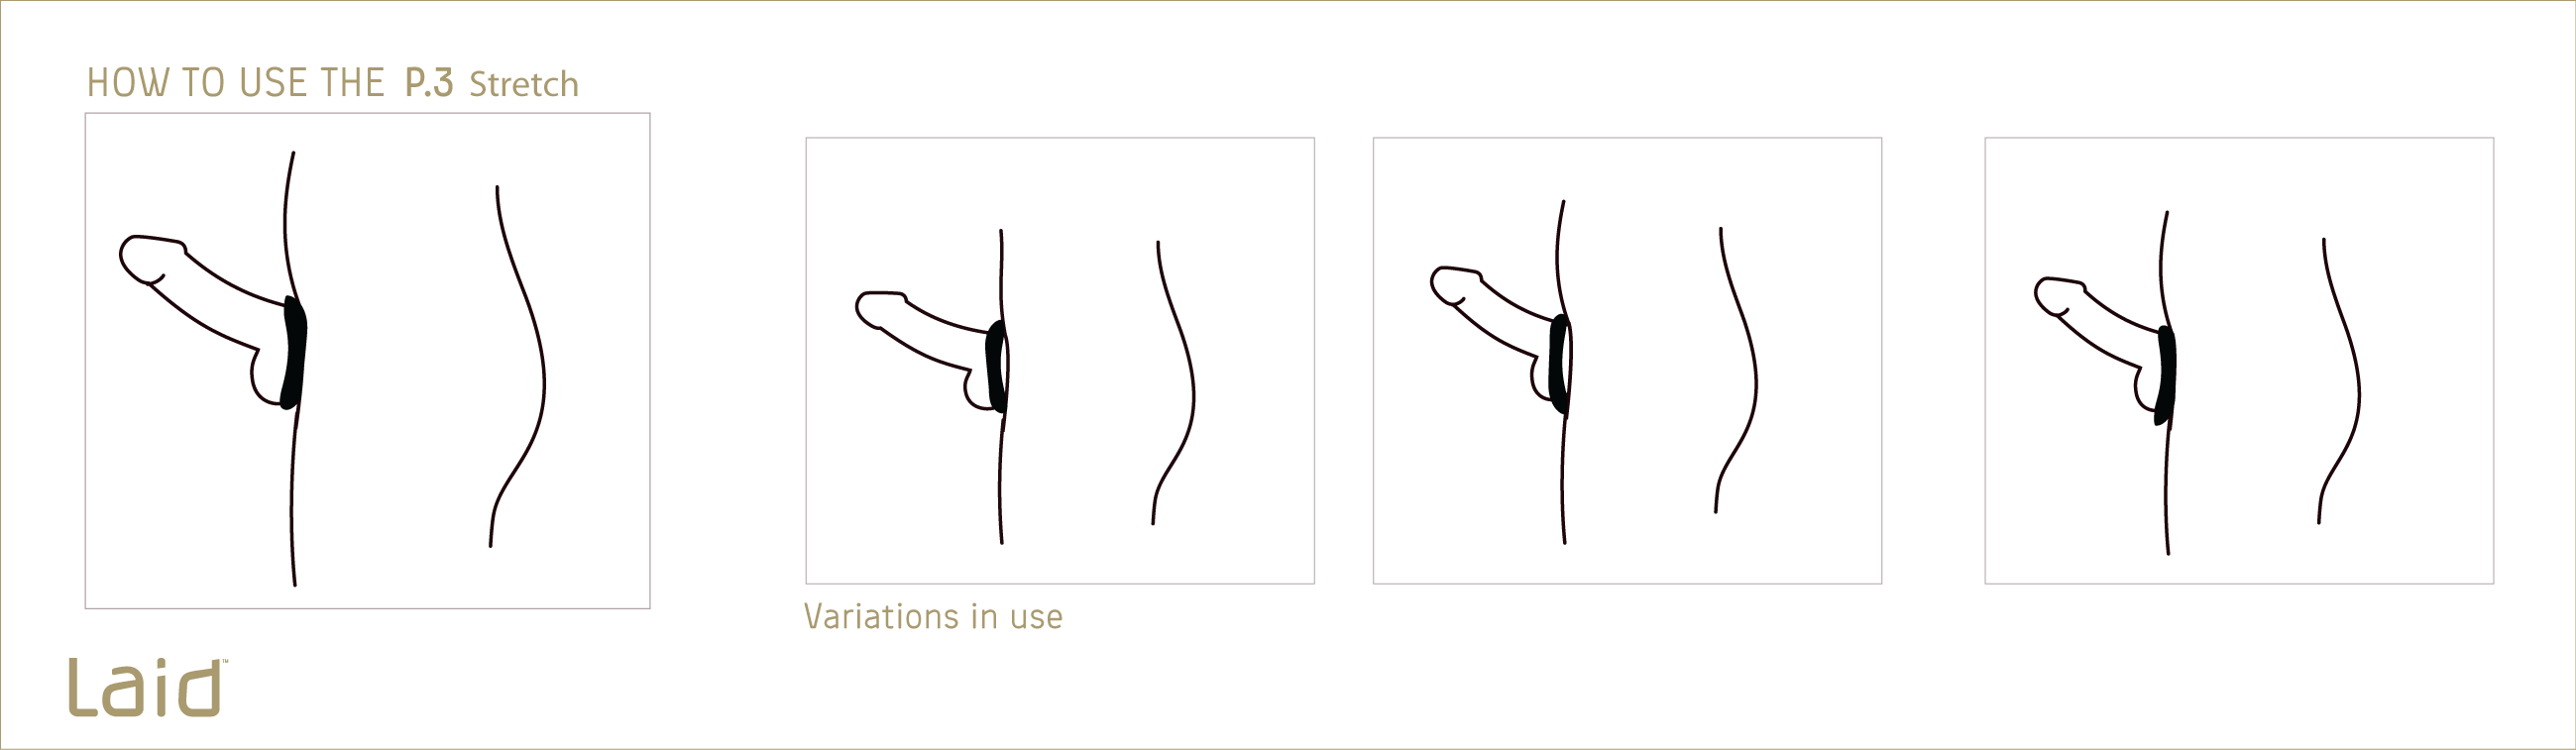 laid-p3-stretch-penis-ring-how-to-use.png